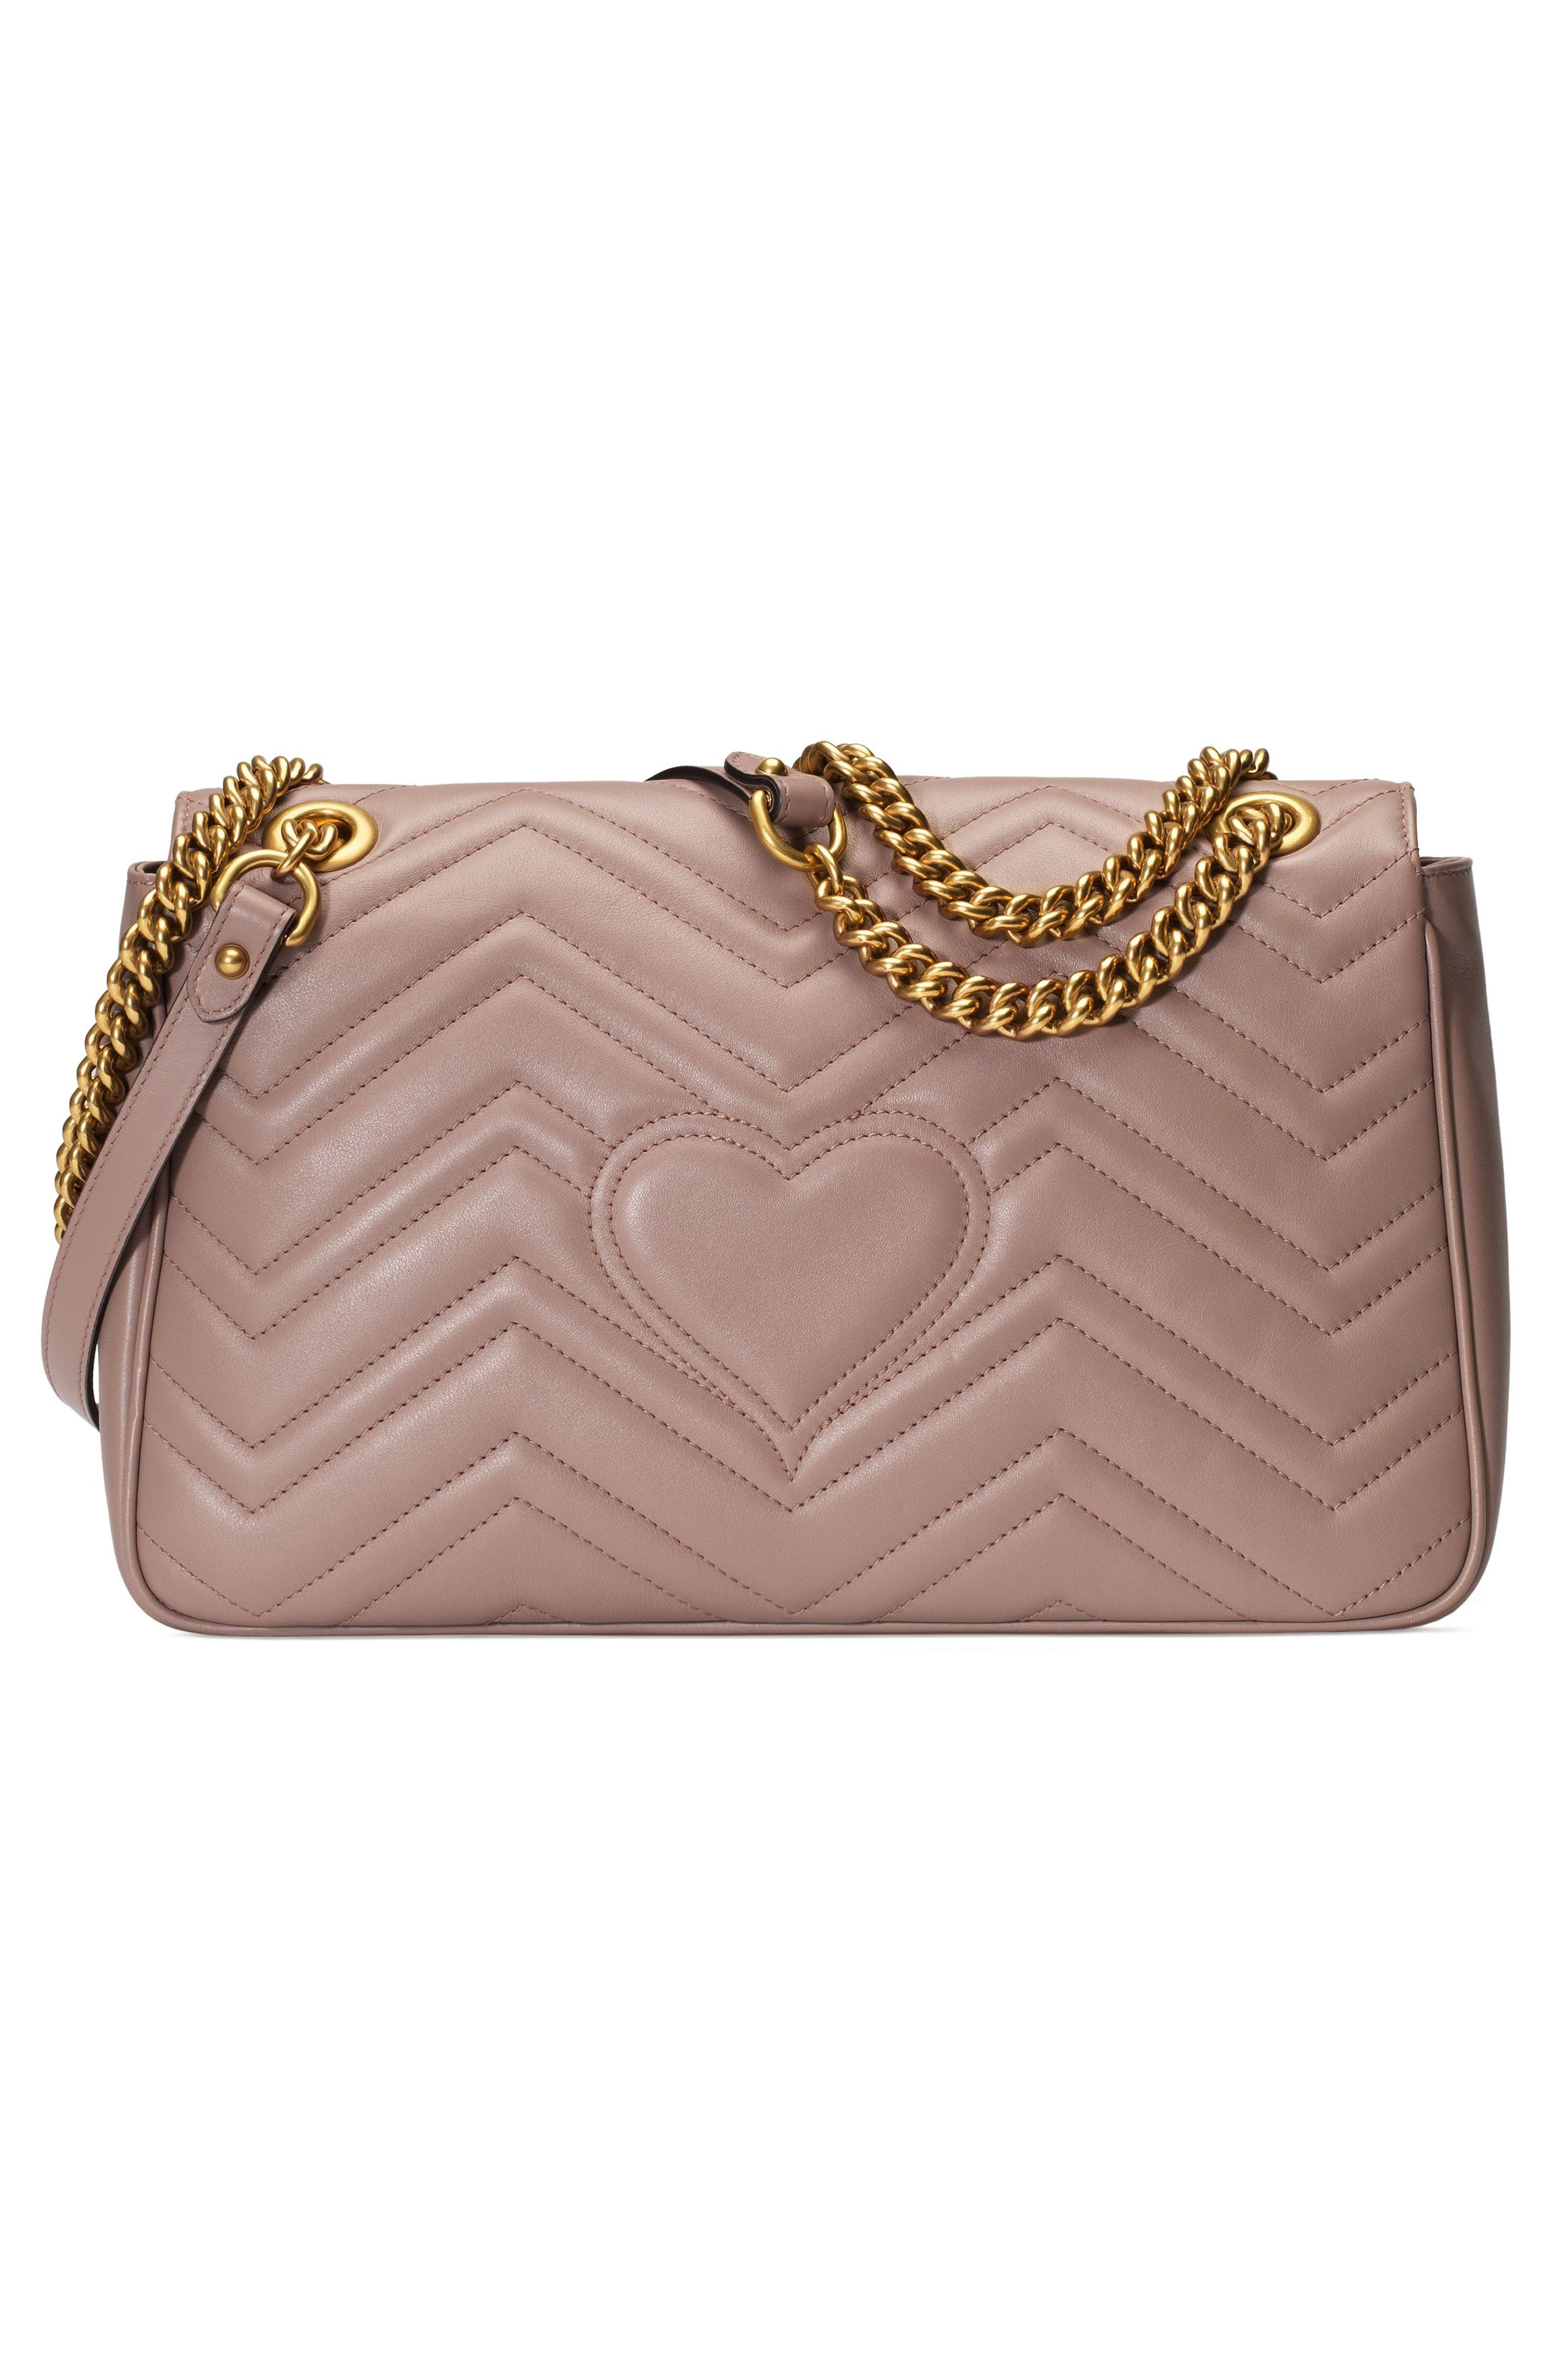 GUCCI, Medium GG Marmont 2.0 Matelassé Leather Shoulder Bag, Alternate thumbnail 2, color, PORCELAIN ROSE/ PORCELAIN ROSE